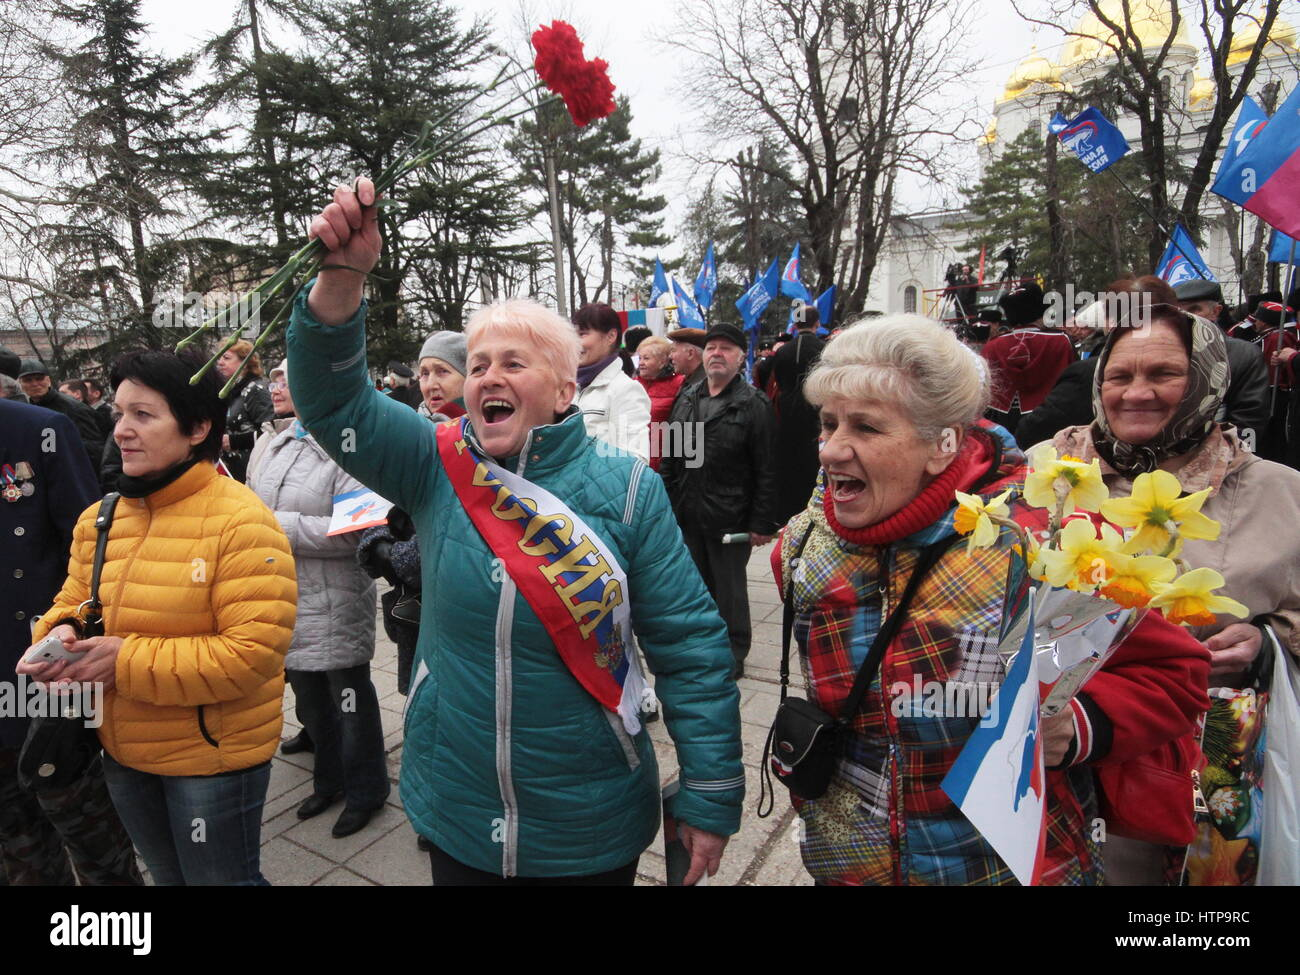 Simferopol, Russia. 16th Mar, 2017. Local residents cheer during a celebration marking the 3rd anniversary of the - Stock Image